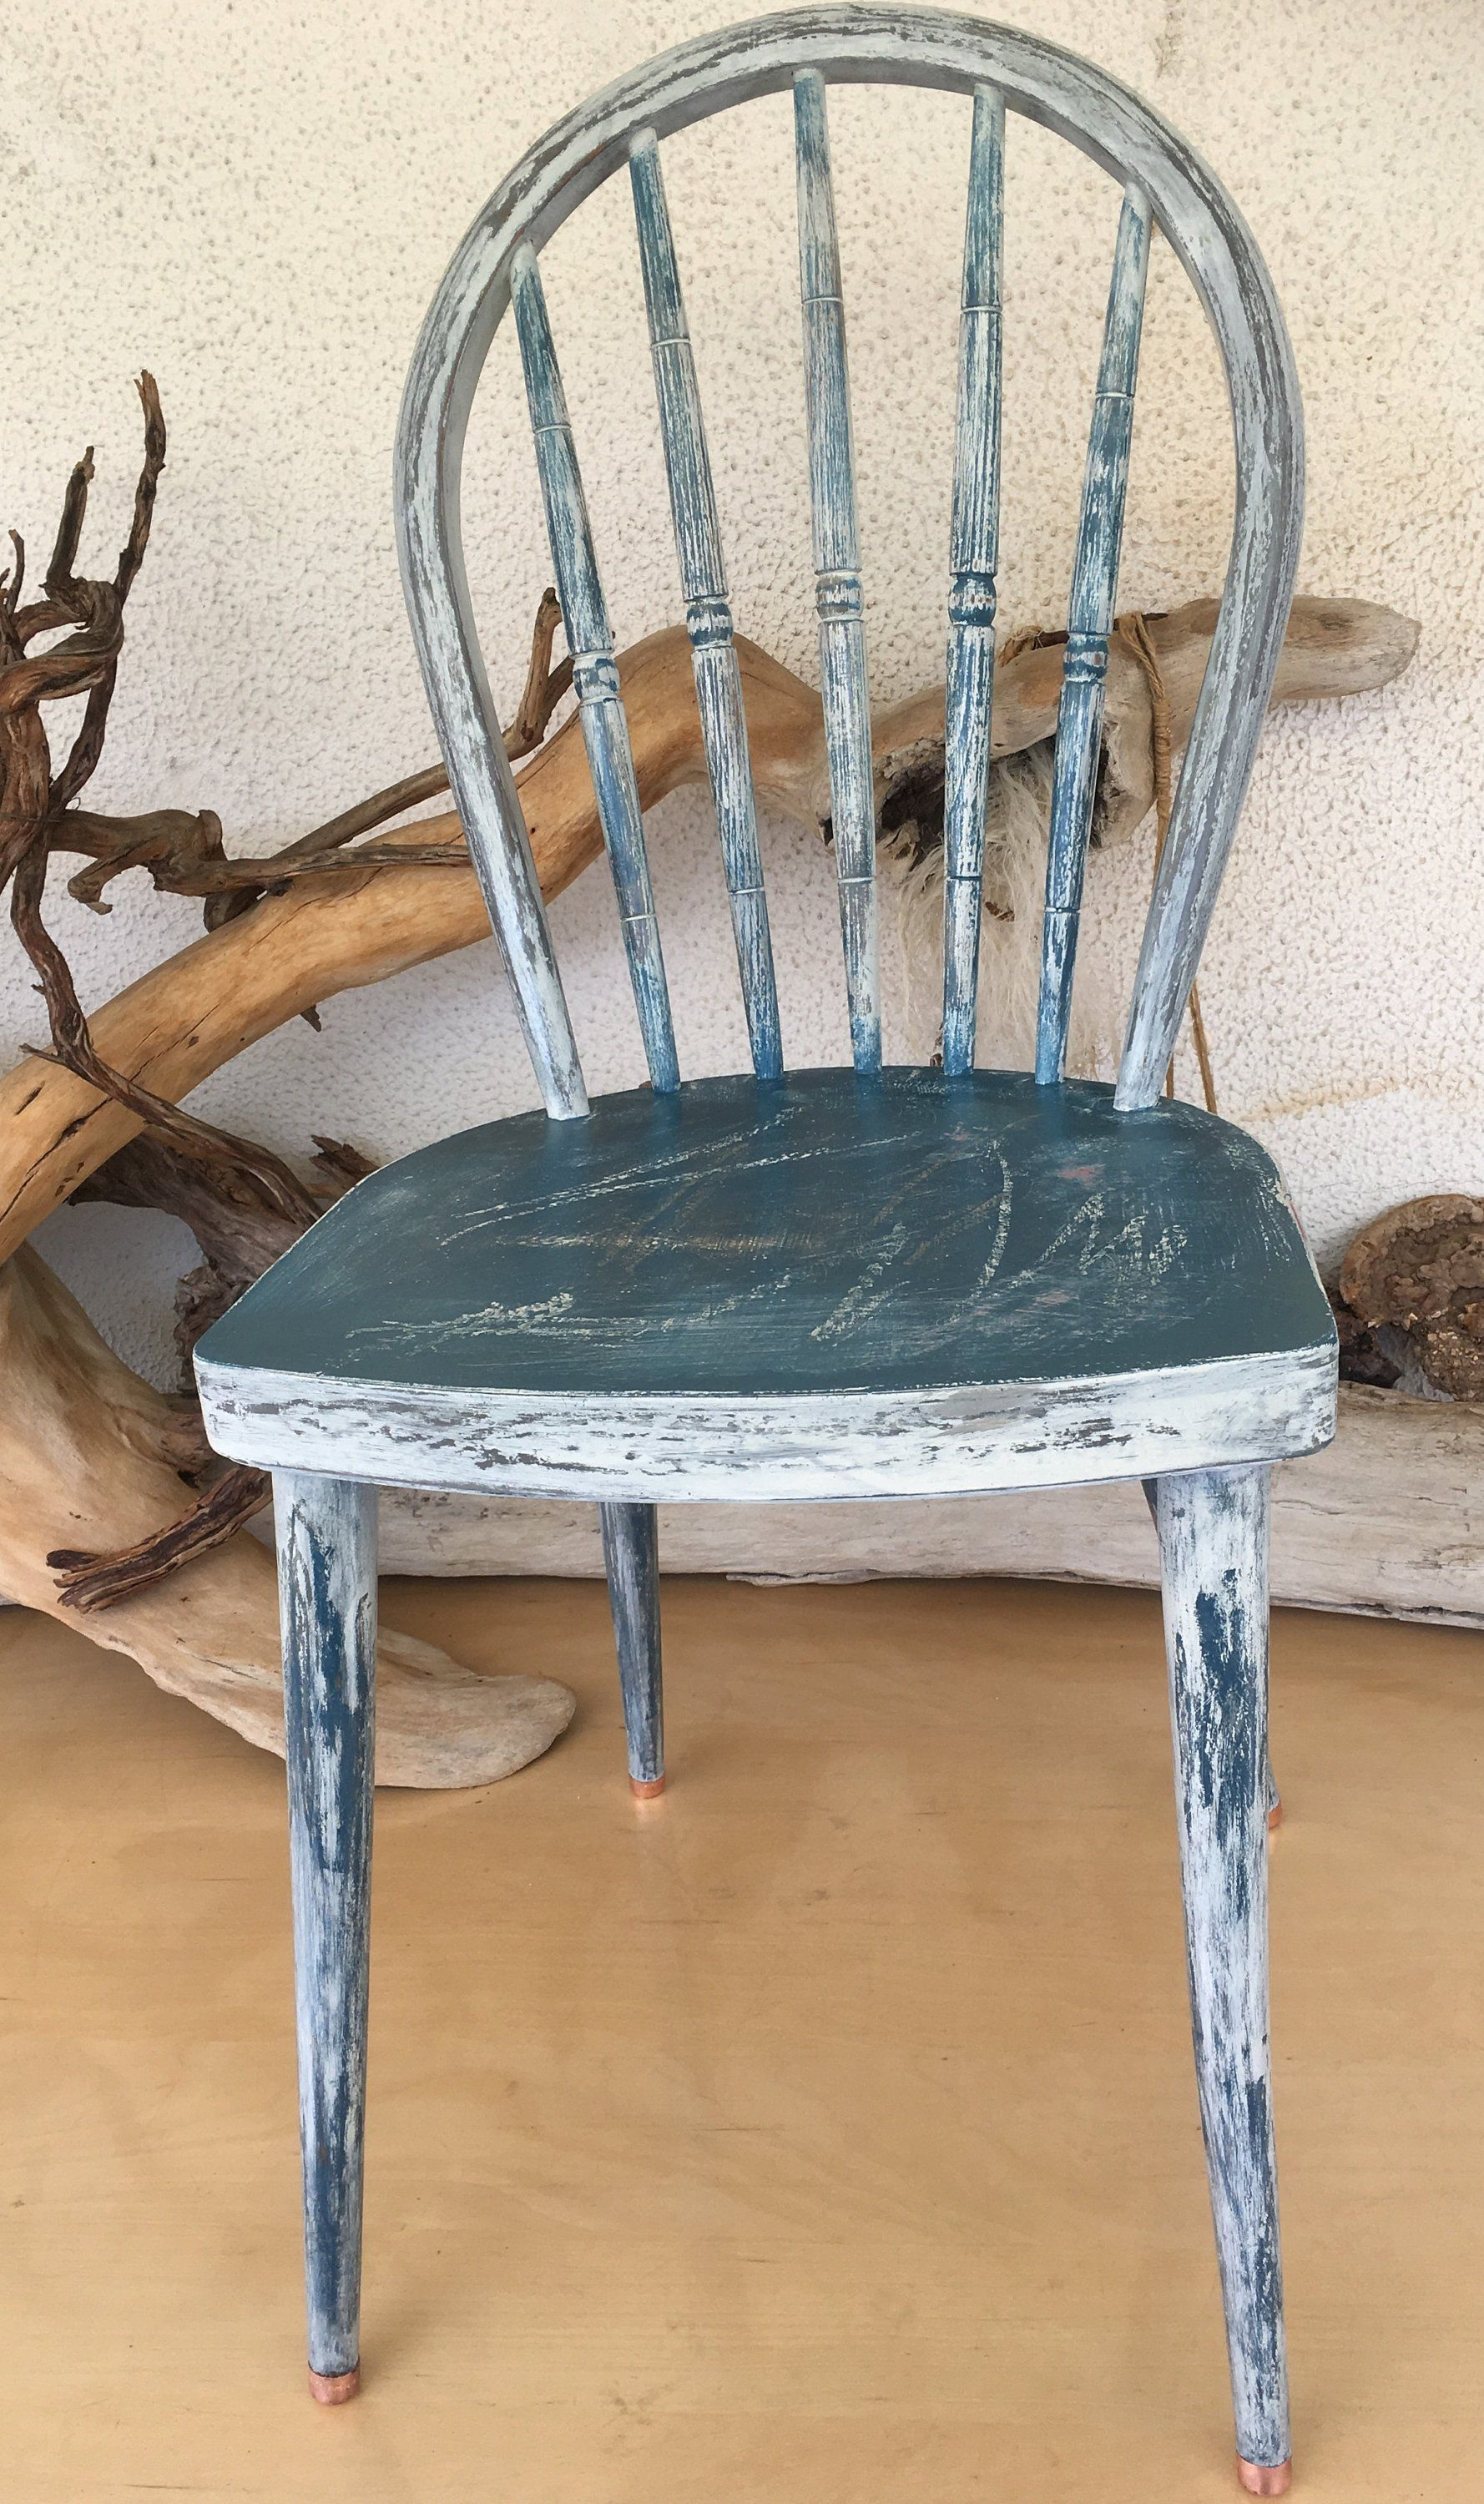 Vintage Hand Painted Chair Shabby Chic Chair Wood Chair Etsy Shabby Chic Chairs Shabby Chic Furniture Shabby Chic Homes